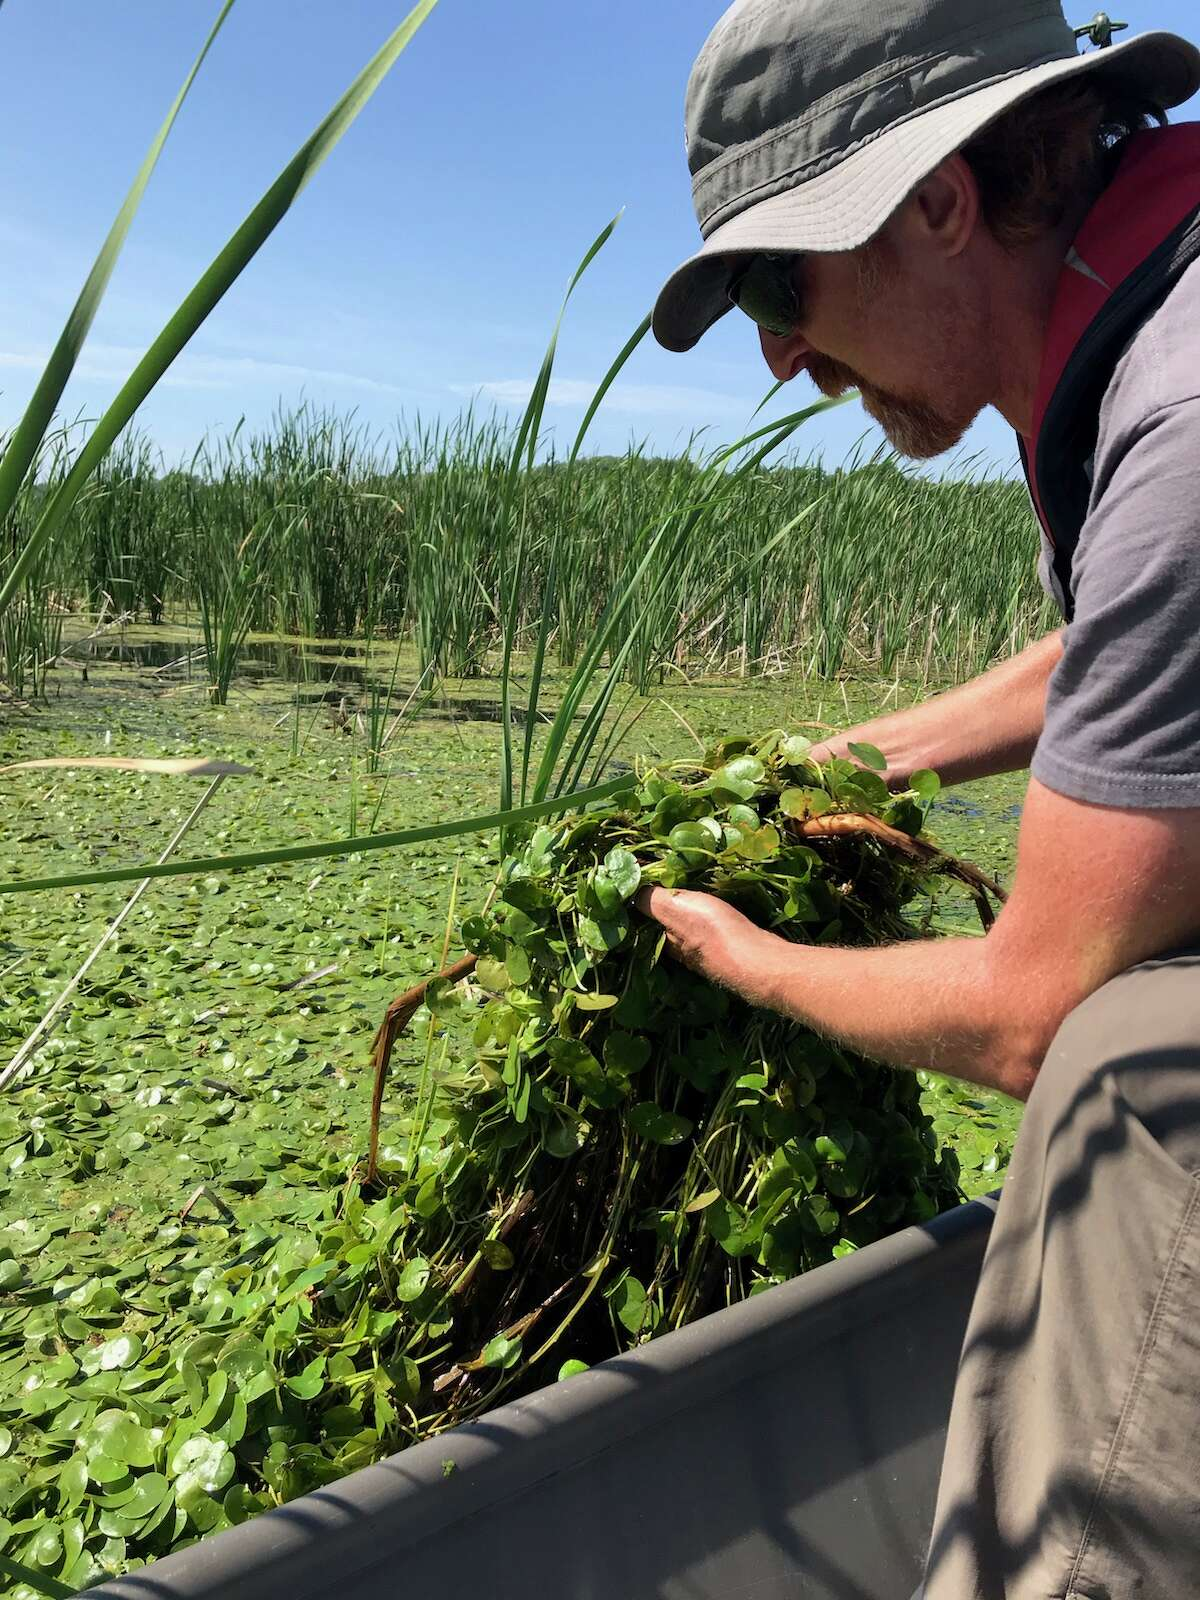 Michigan Department of Environment, Great Lakes and Energy aquatic biologist Tom Alwin removes European frog-bit from a backwater area in Pentwater River State Game Area.